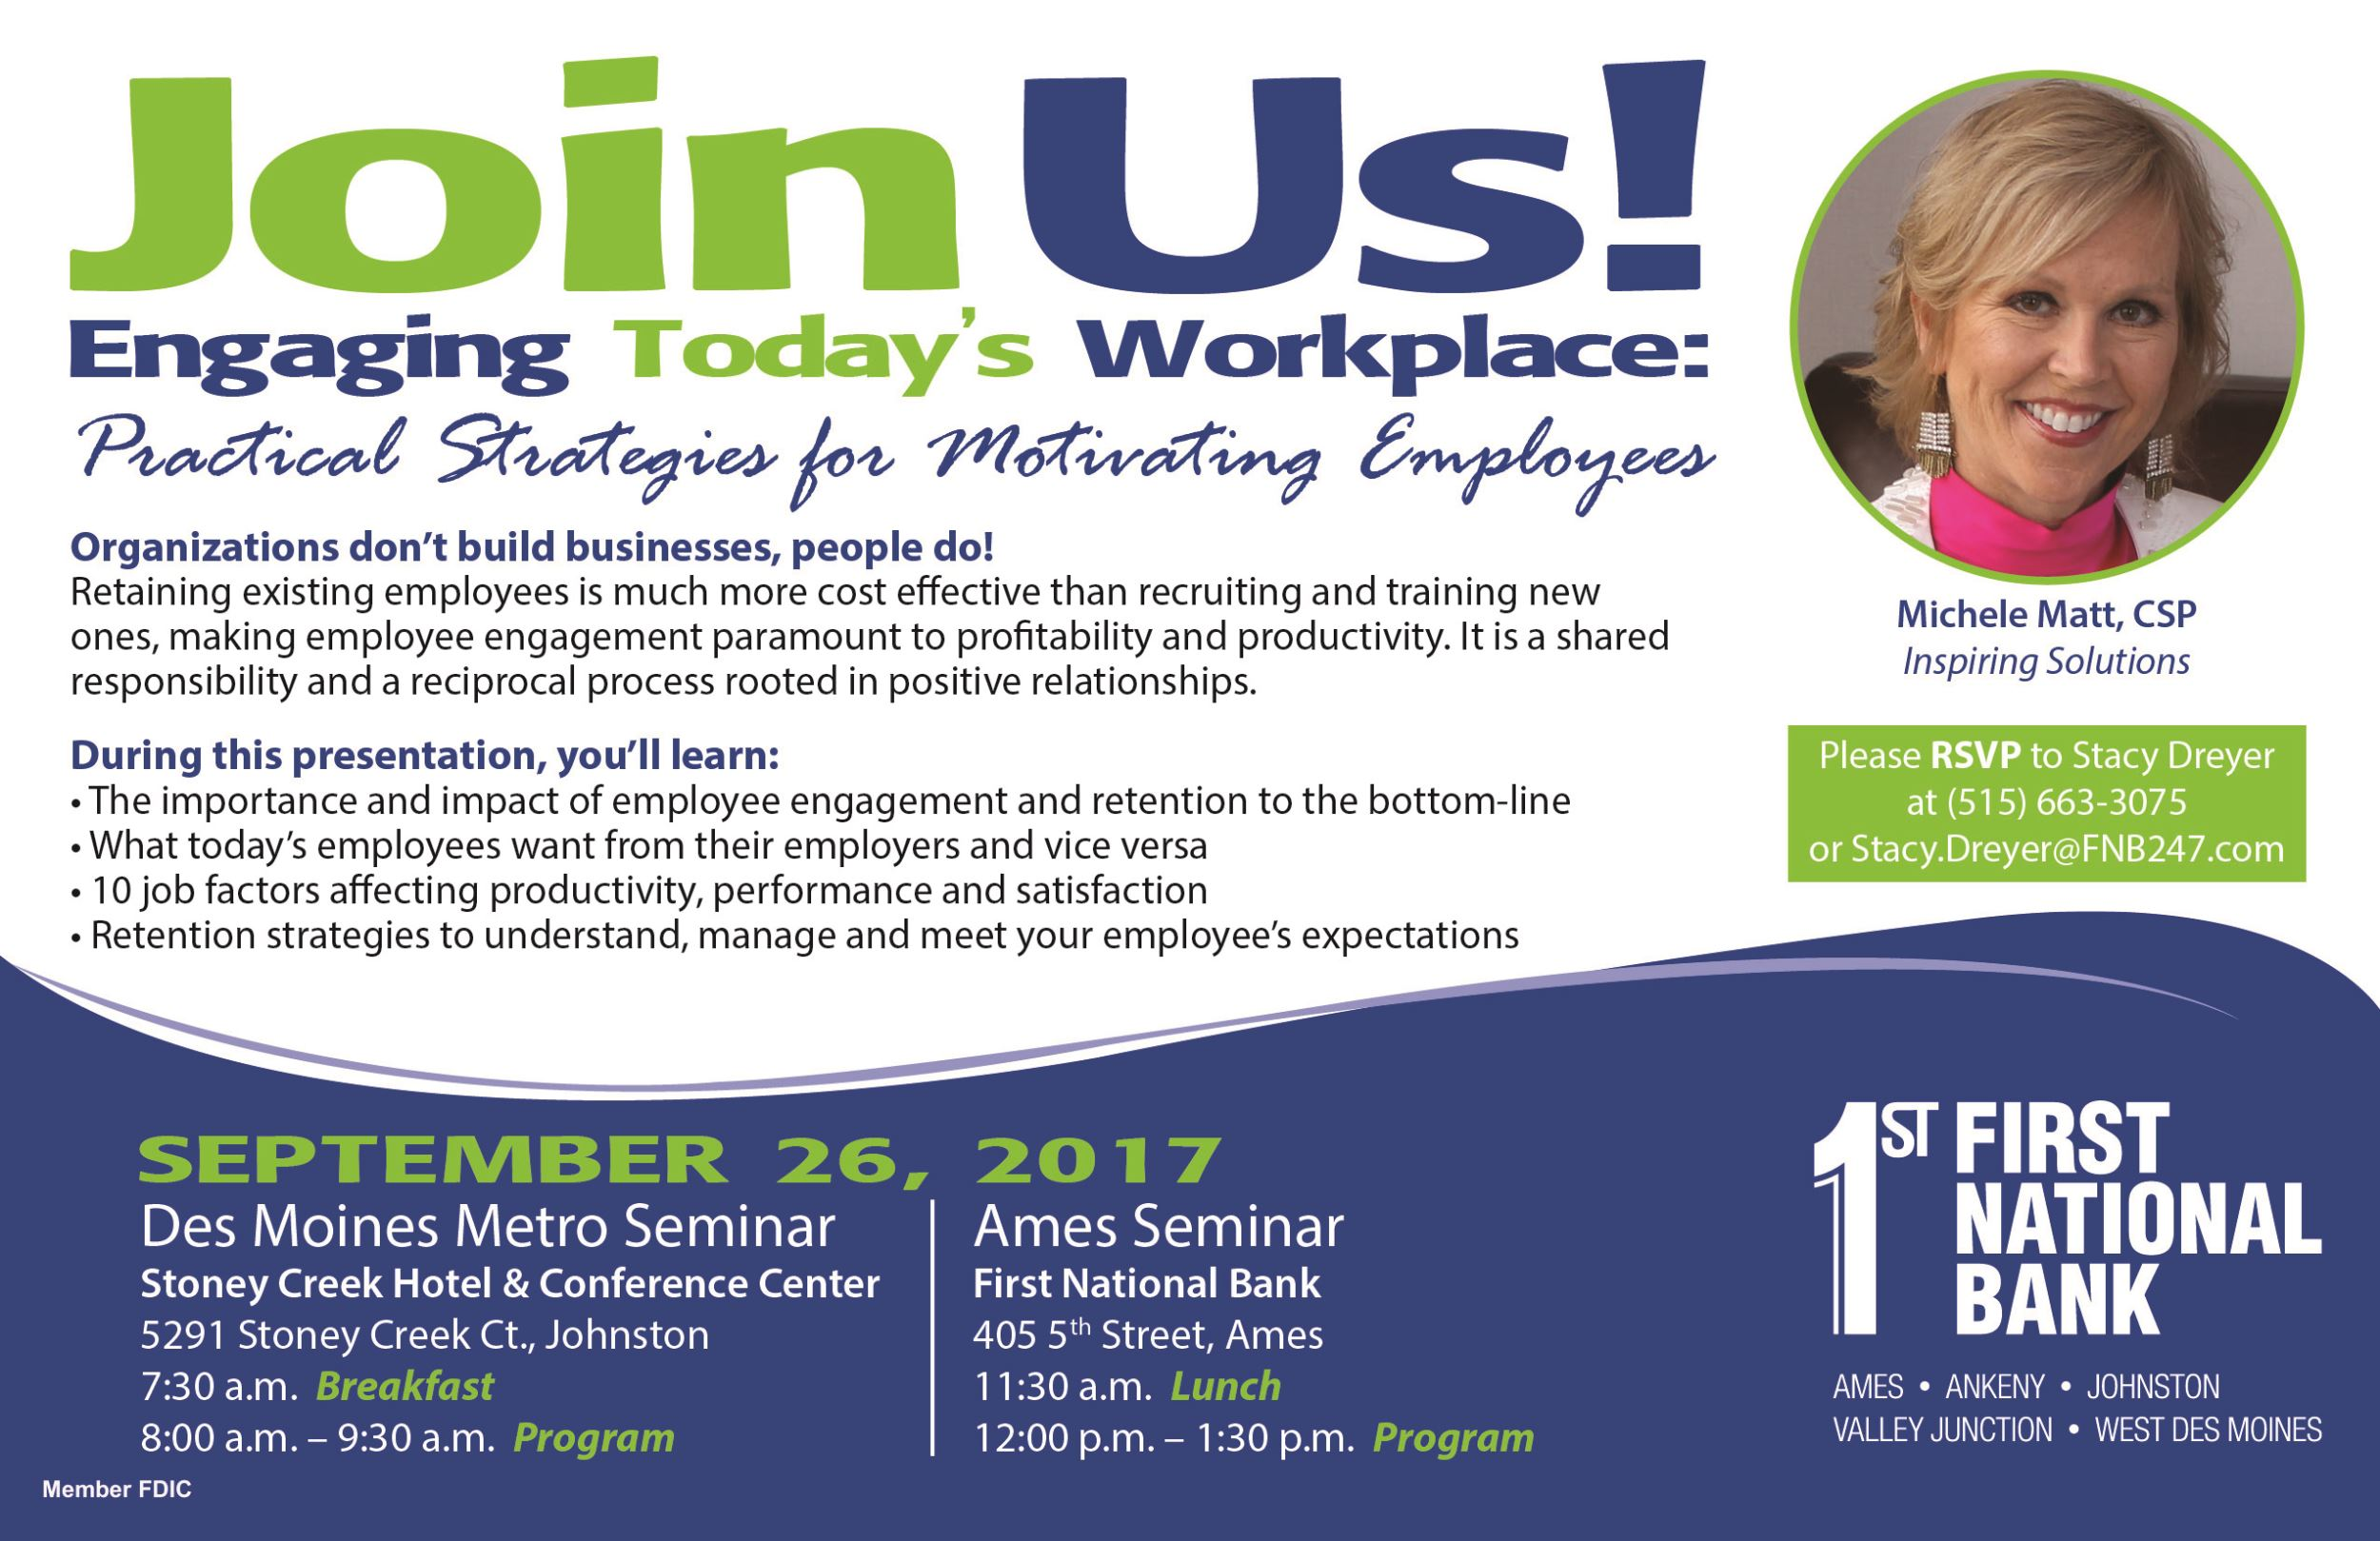 Engaging Today's Workplaces - Strategies for Motivating Employees